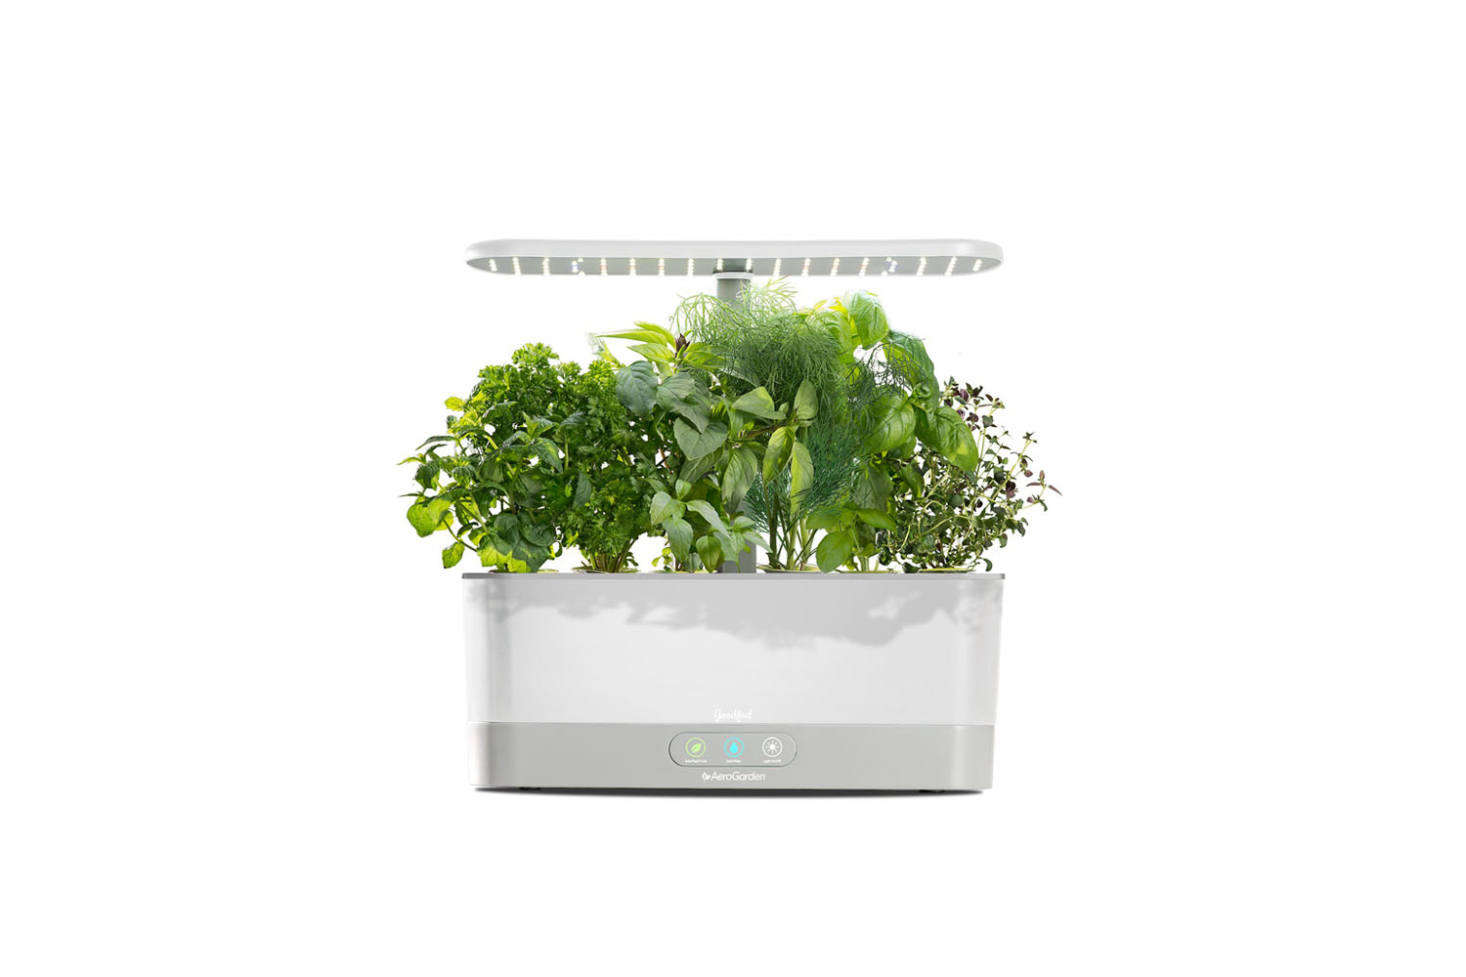 The Goodful Harvest Slim Countertop Garden & Gourmet Herbs Seed Kit is another model from AeroGarden but a little more simplified than the model featured previously. It&#8